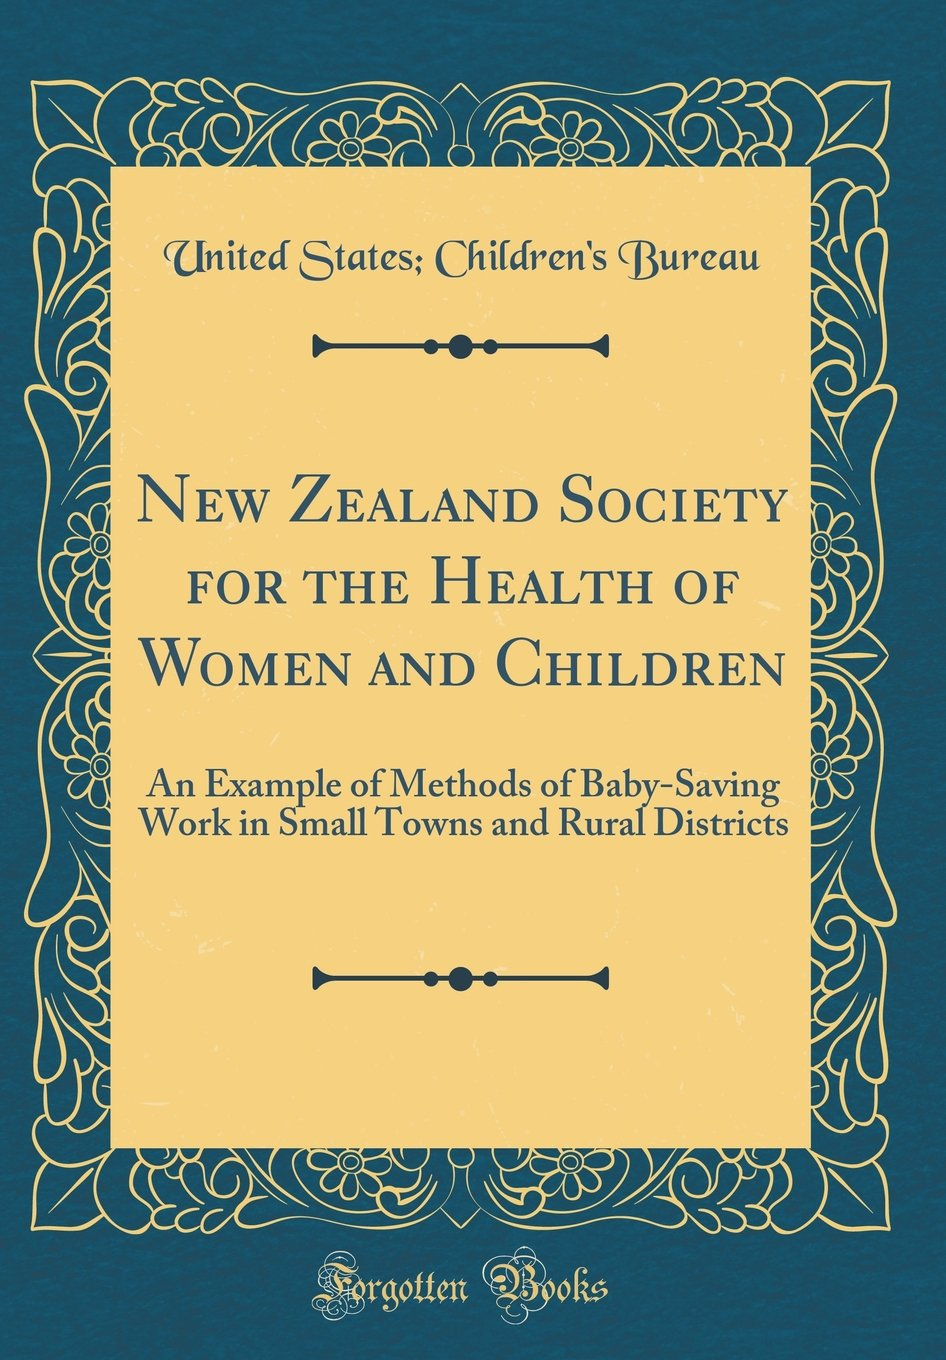 New Zealand Society for the Health of Women and Children: An Example of Methods of Baby-Saving Work in Small Towns and Rural Districts (Classic Reprint) PDF